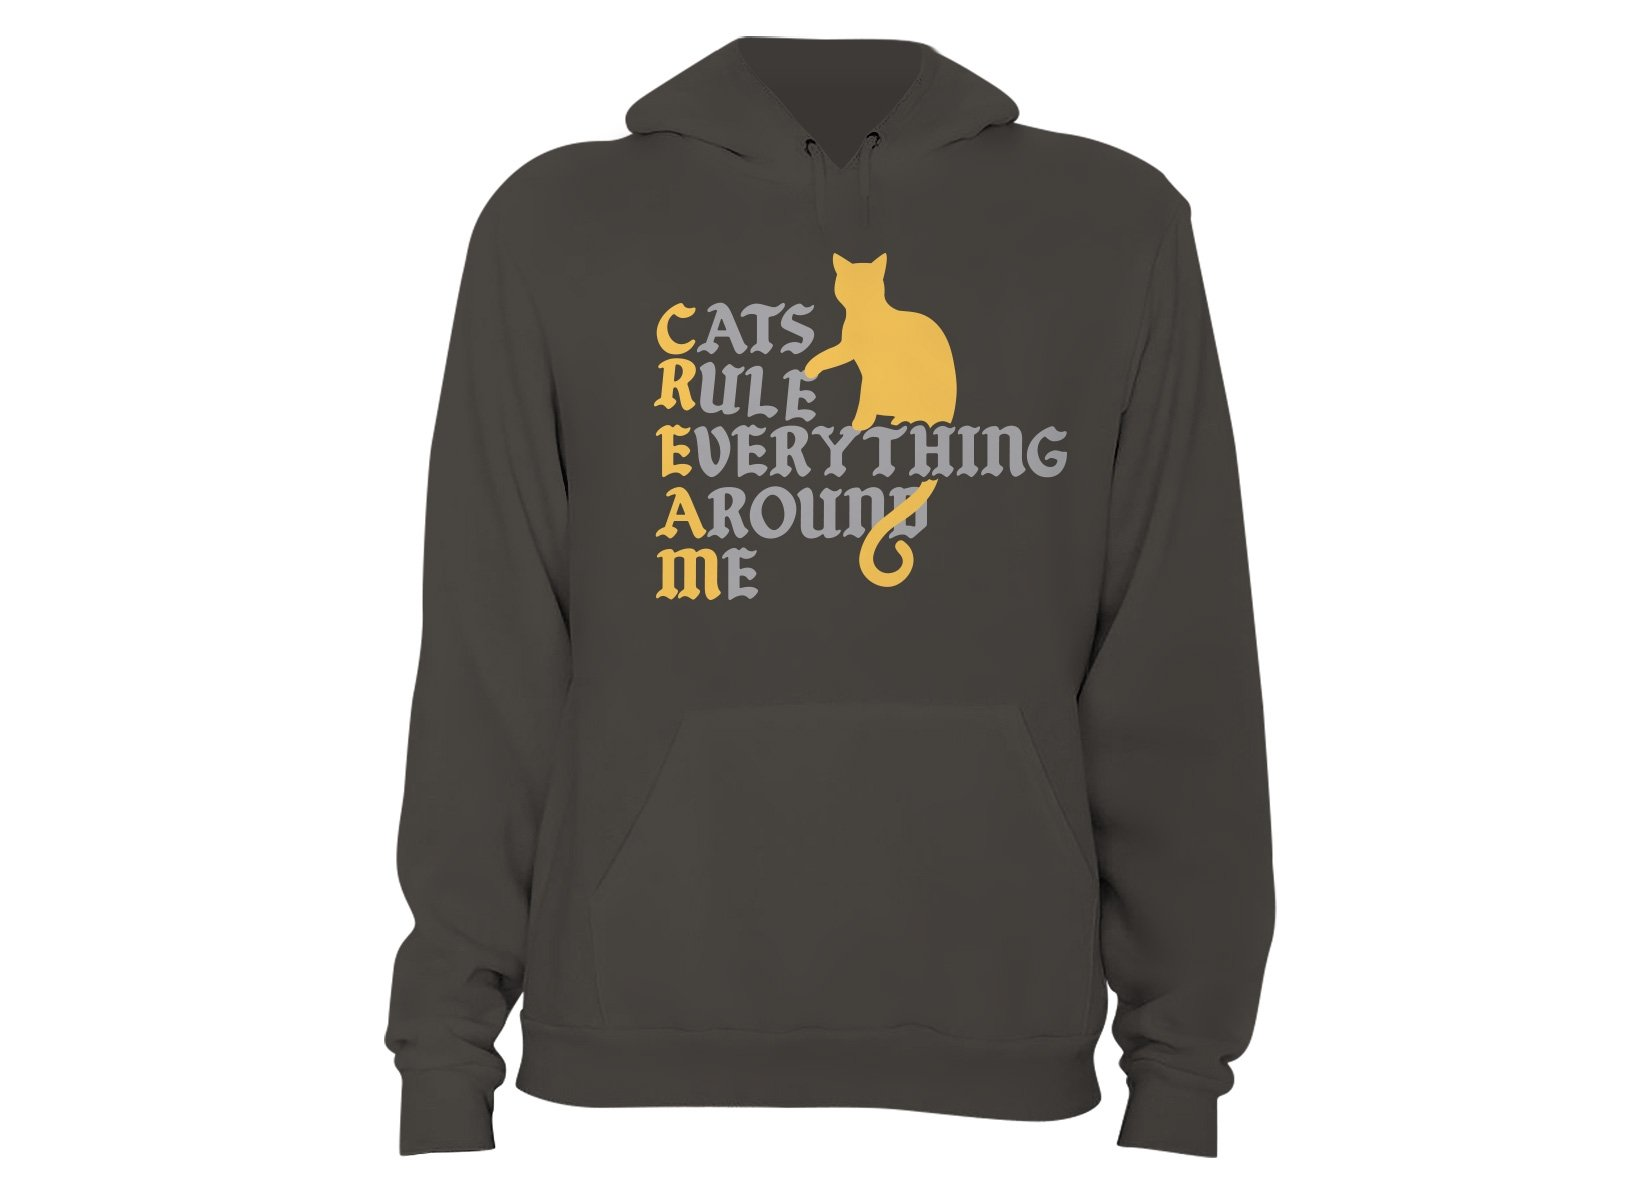 Cats Rule Everything Around Me on Hoodie